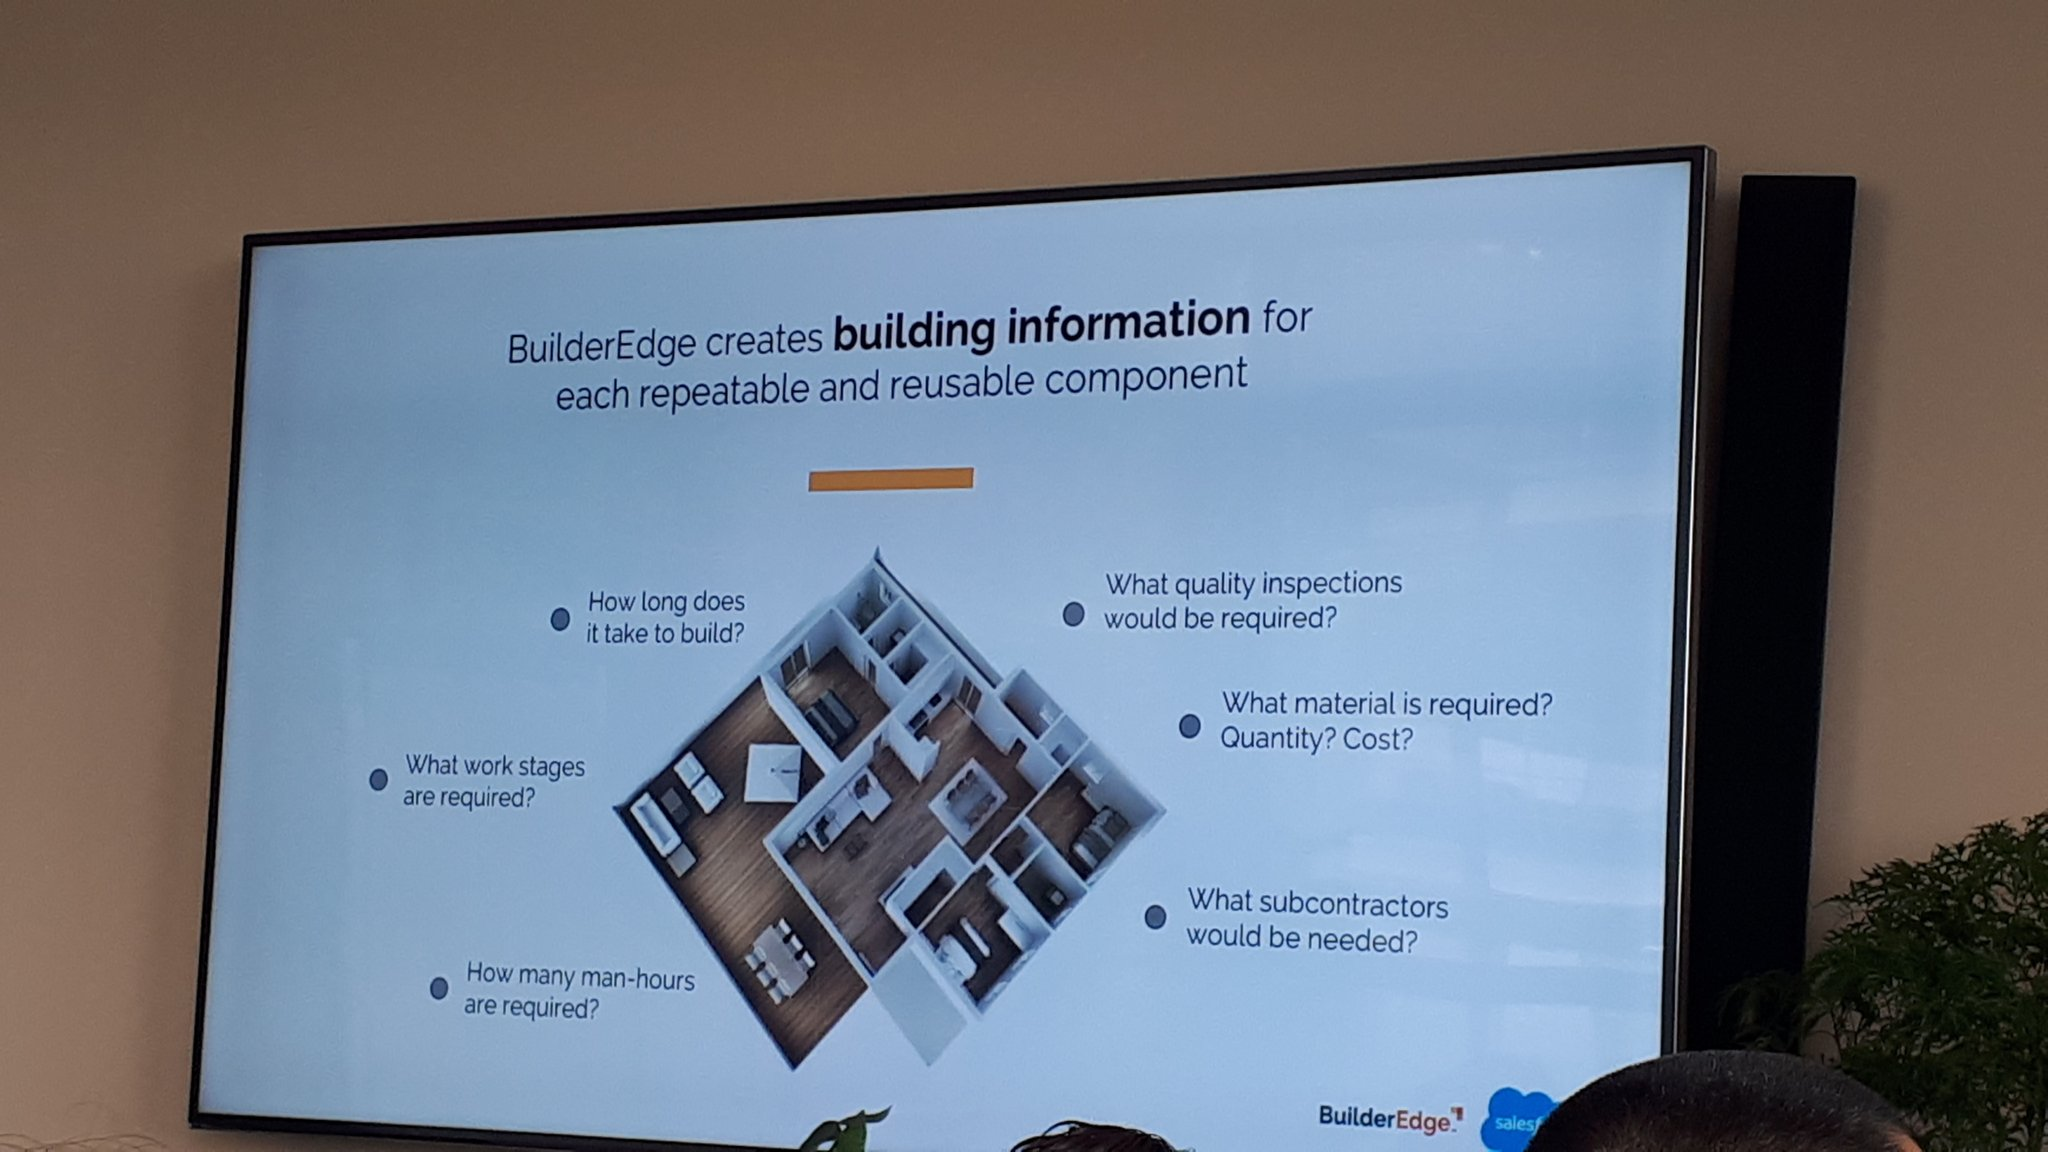 BuilderEdge reusing building information